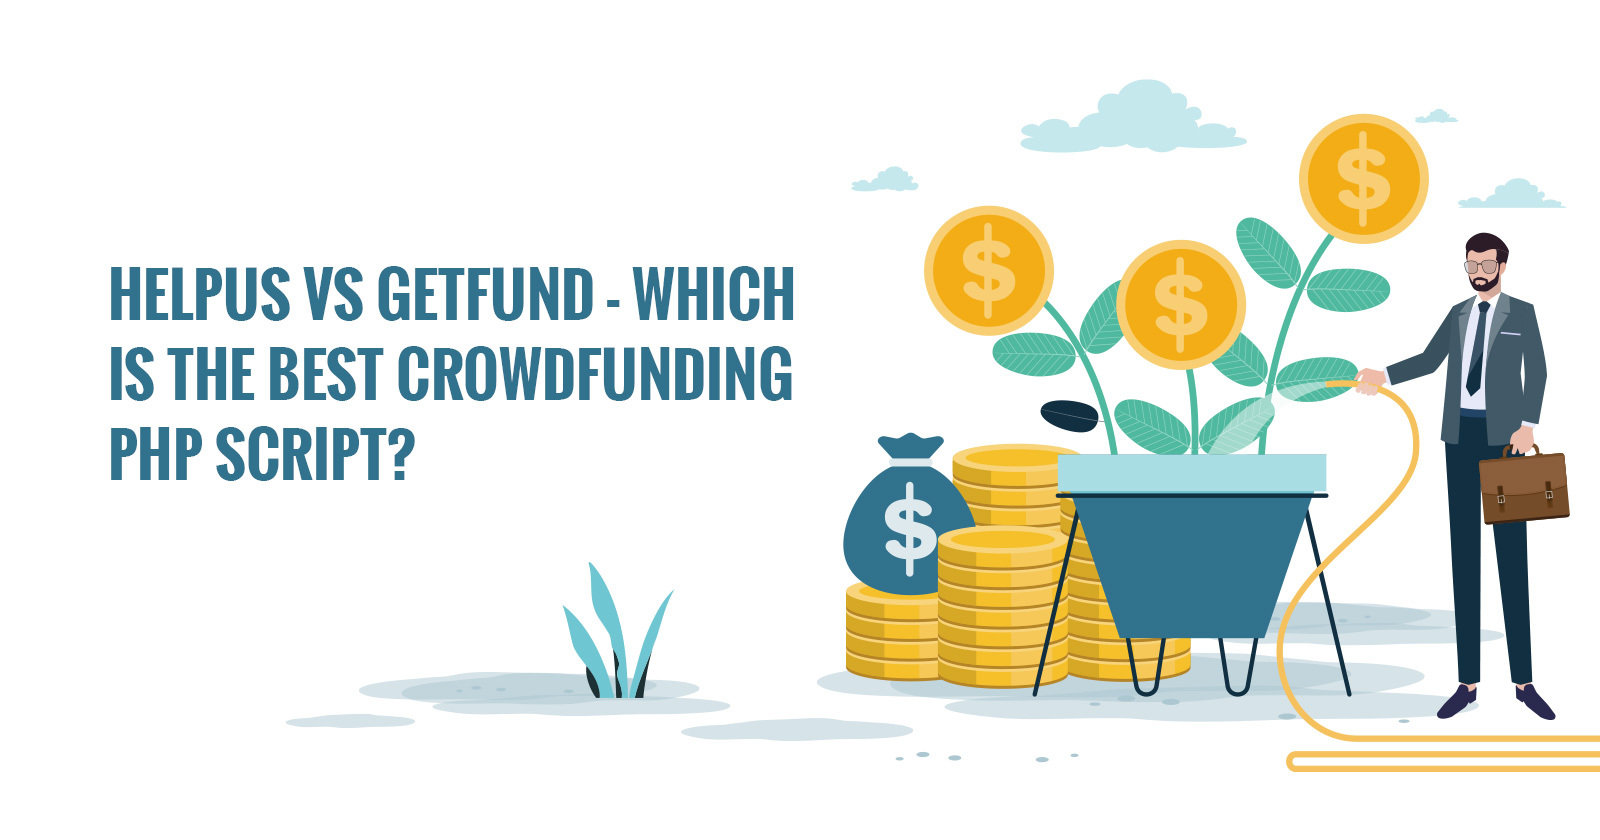 Best crowdfunding PHP script